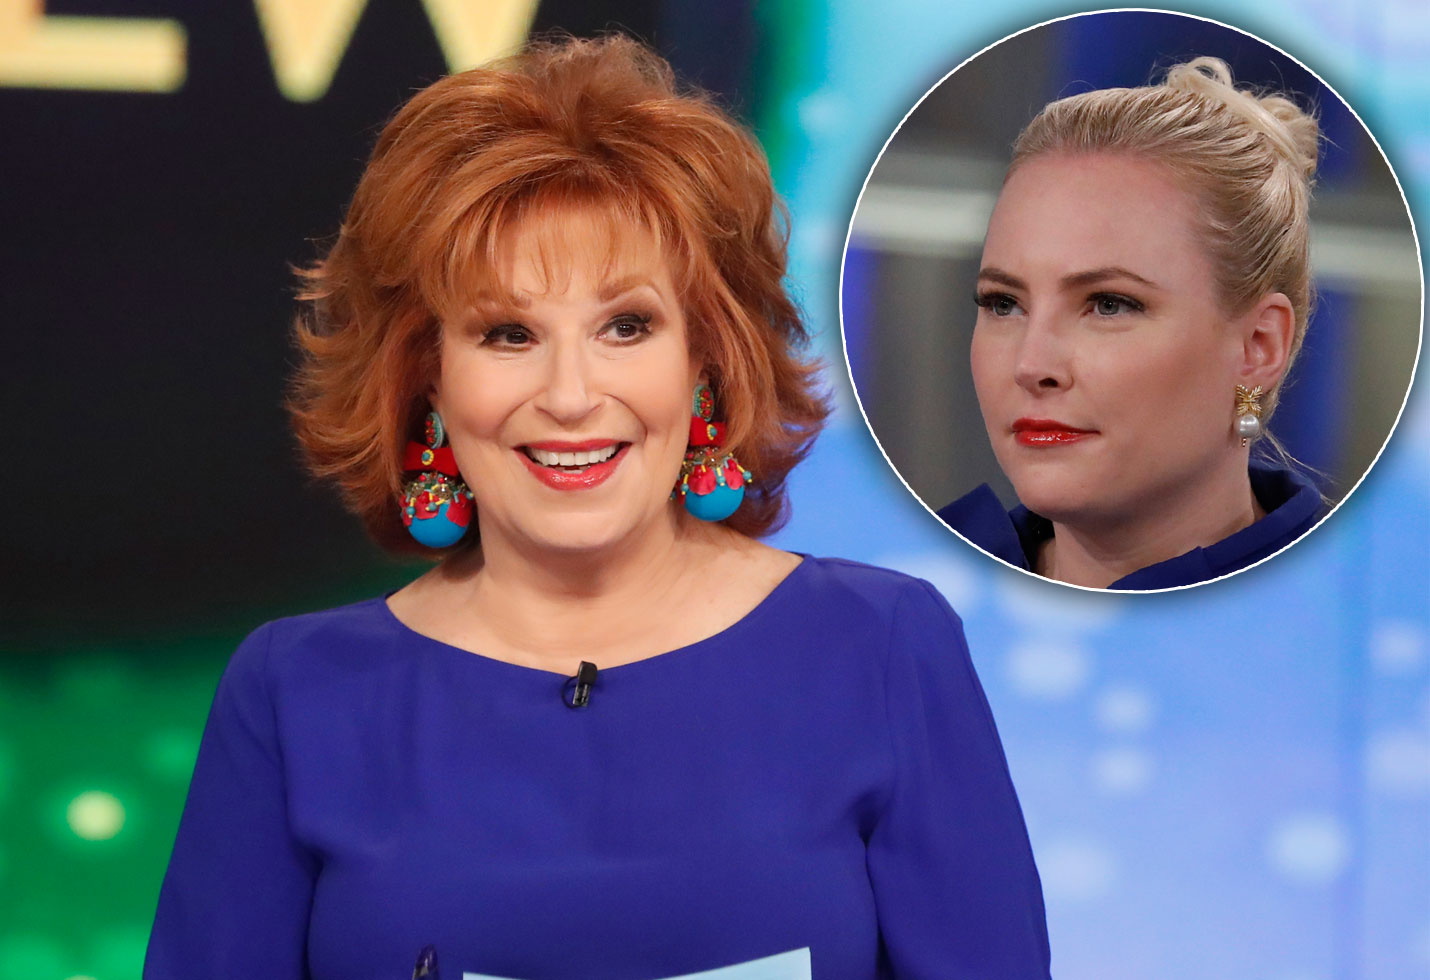 Joy Behar blue shirt / Meghan McCain frowning